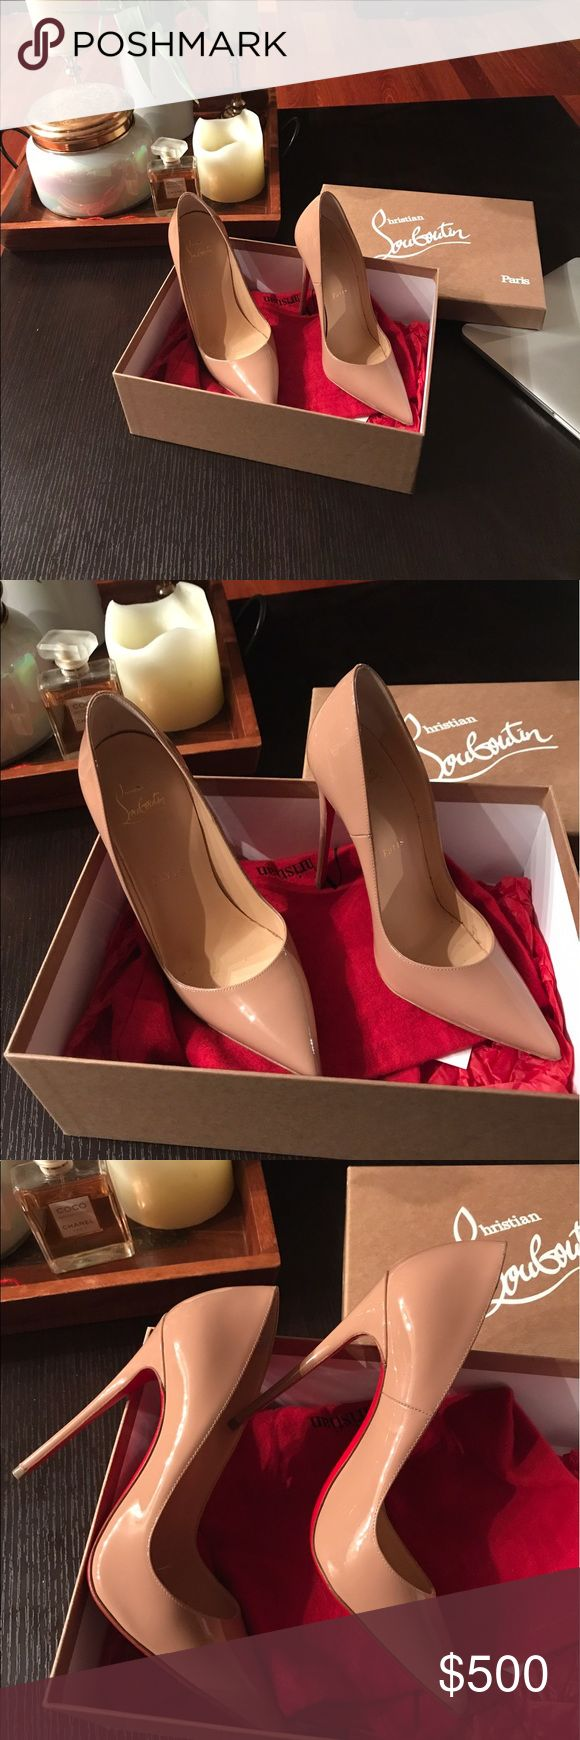 🔥Christian Louboutin So Kate, 120mm, Patent Nude ❗️Letting them go for $420 on e🅱️ay❗️.Authentic, comes with the original box, dust bag and the receipt. Worn a few times, perfect condition. NO OFFERS . Also can consider a trade for Pigalle Follies patent black, similar condition. Thank you ladies😘 Christian Louboutin Shoes Heels